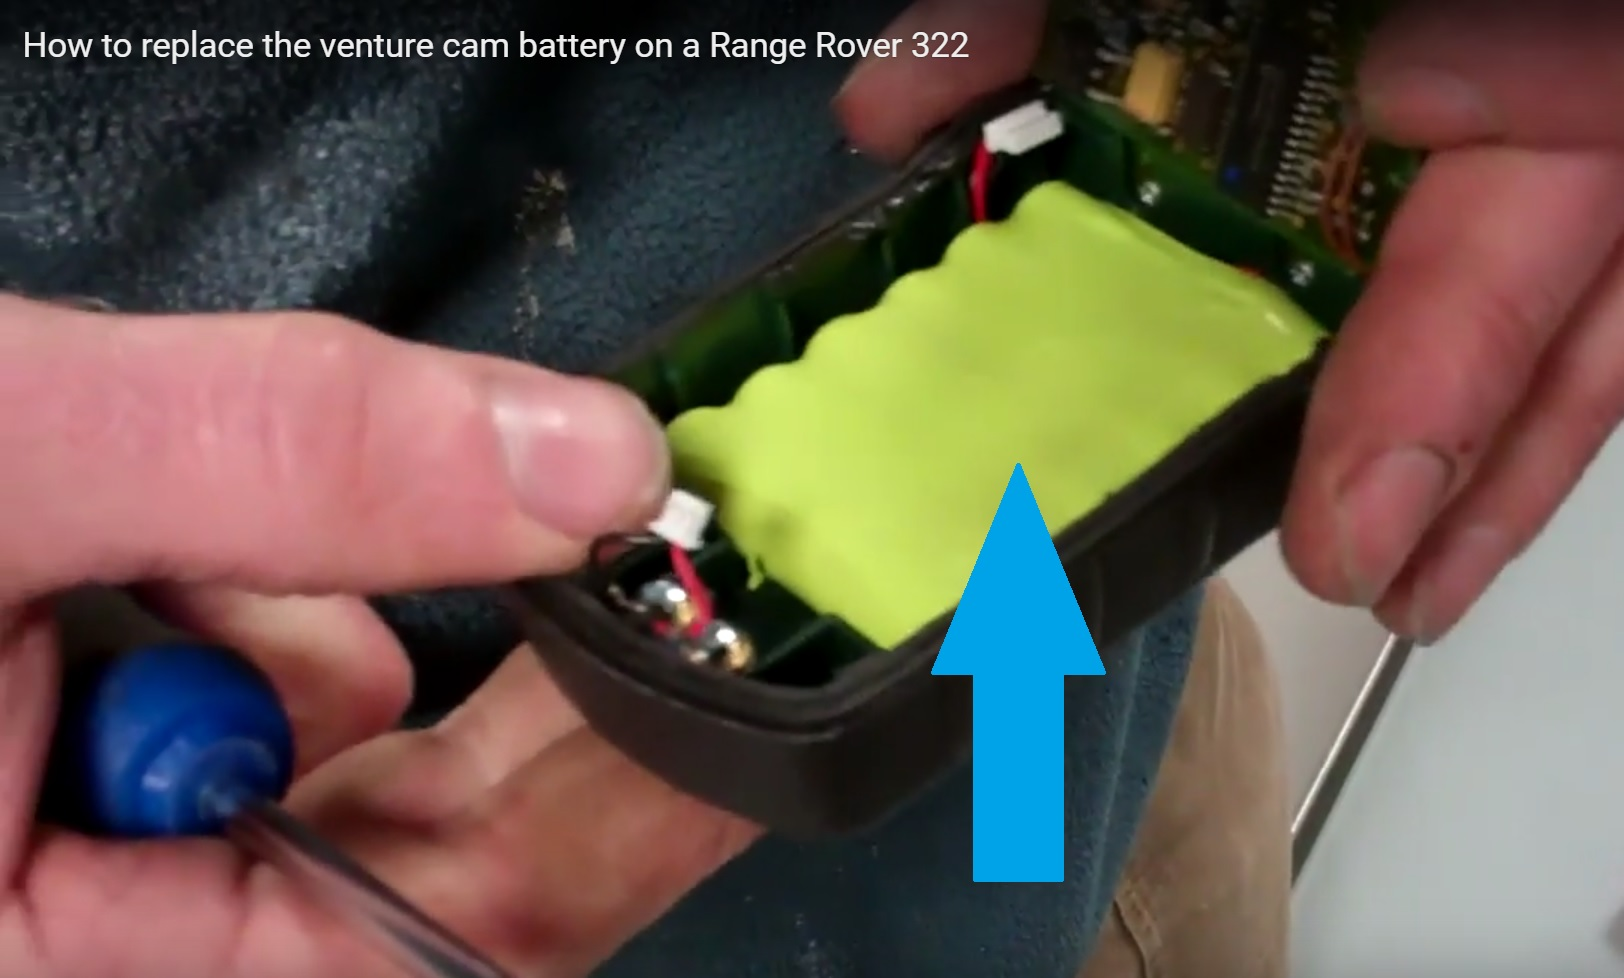 Replacement Battery Pack Range Rover L322 Venture Cam Camera Wiring Picture 2003 Land Discovery 2